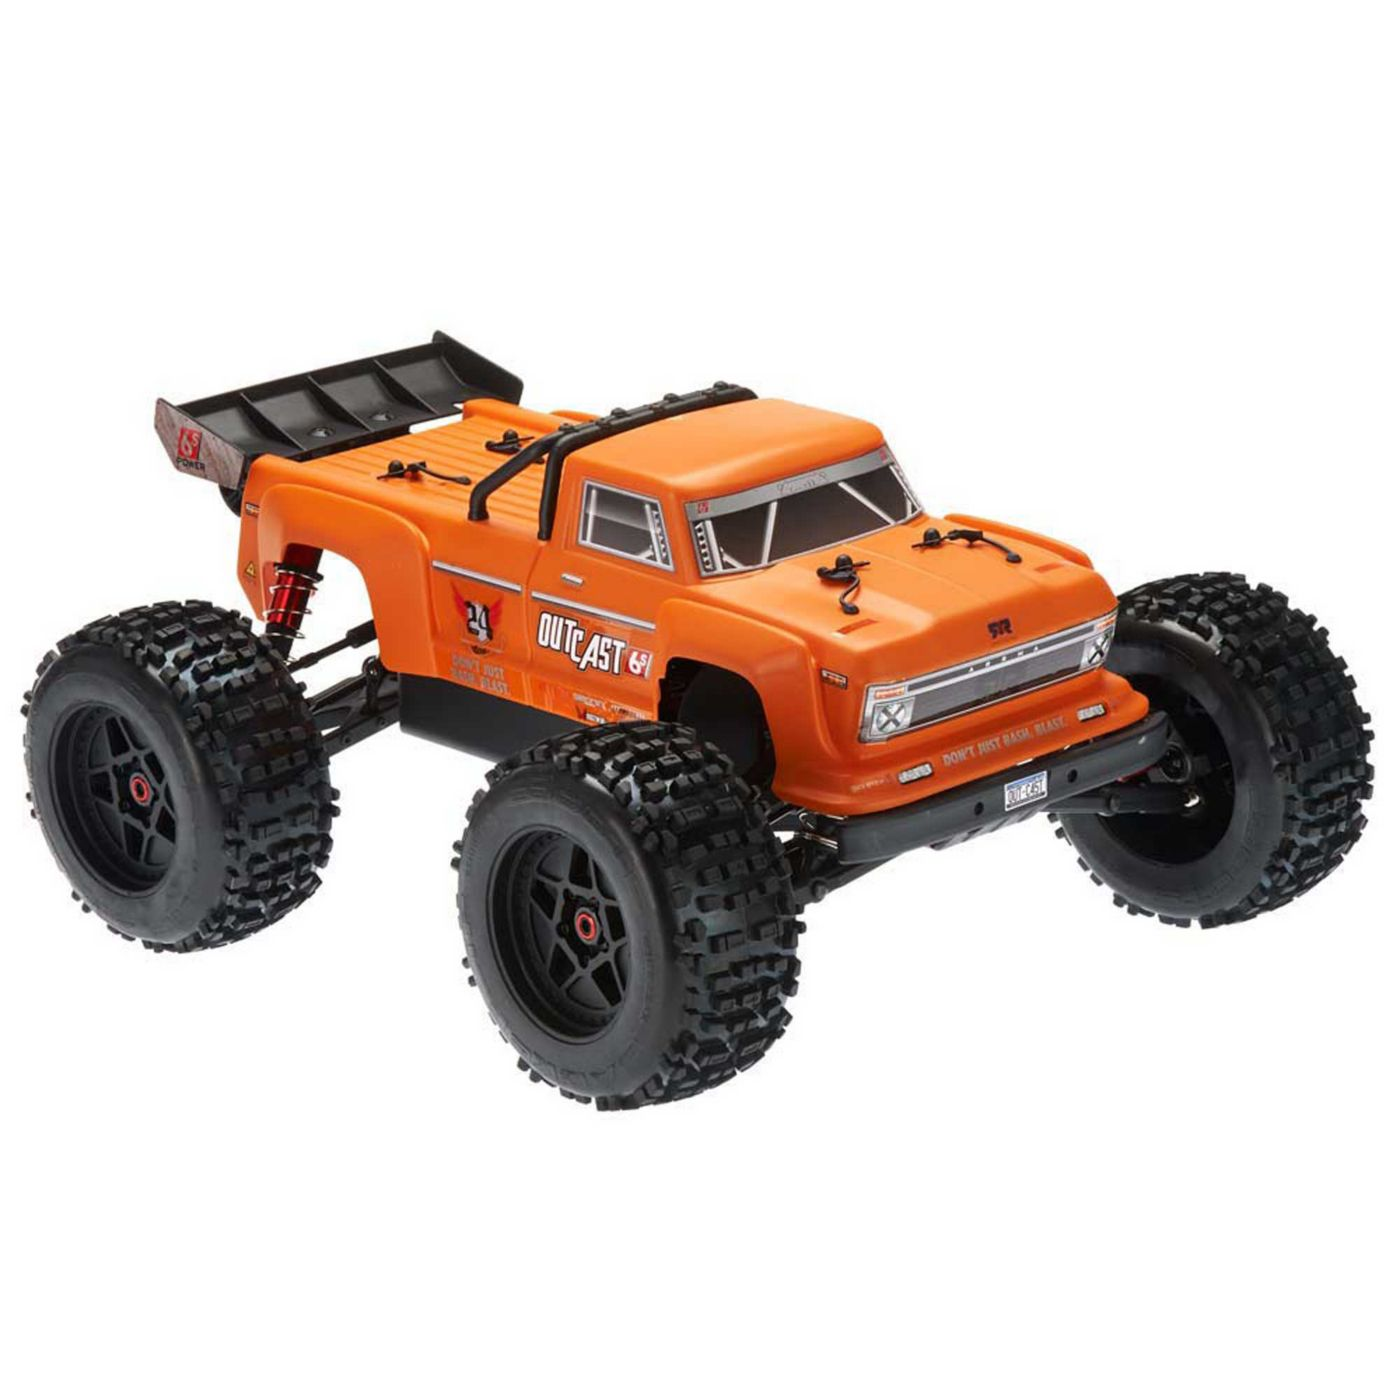 Updated for 2019: The ARRMA Outcast Stunt Truck